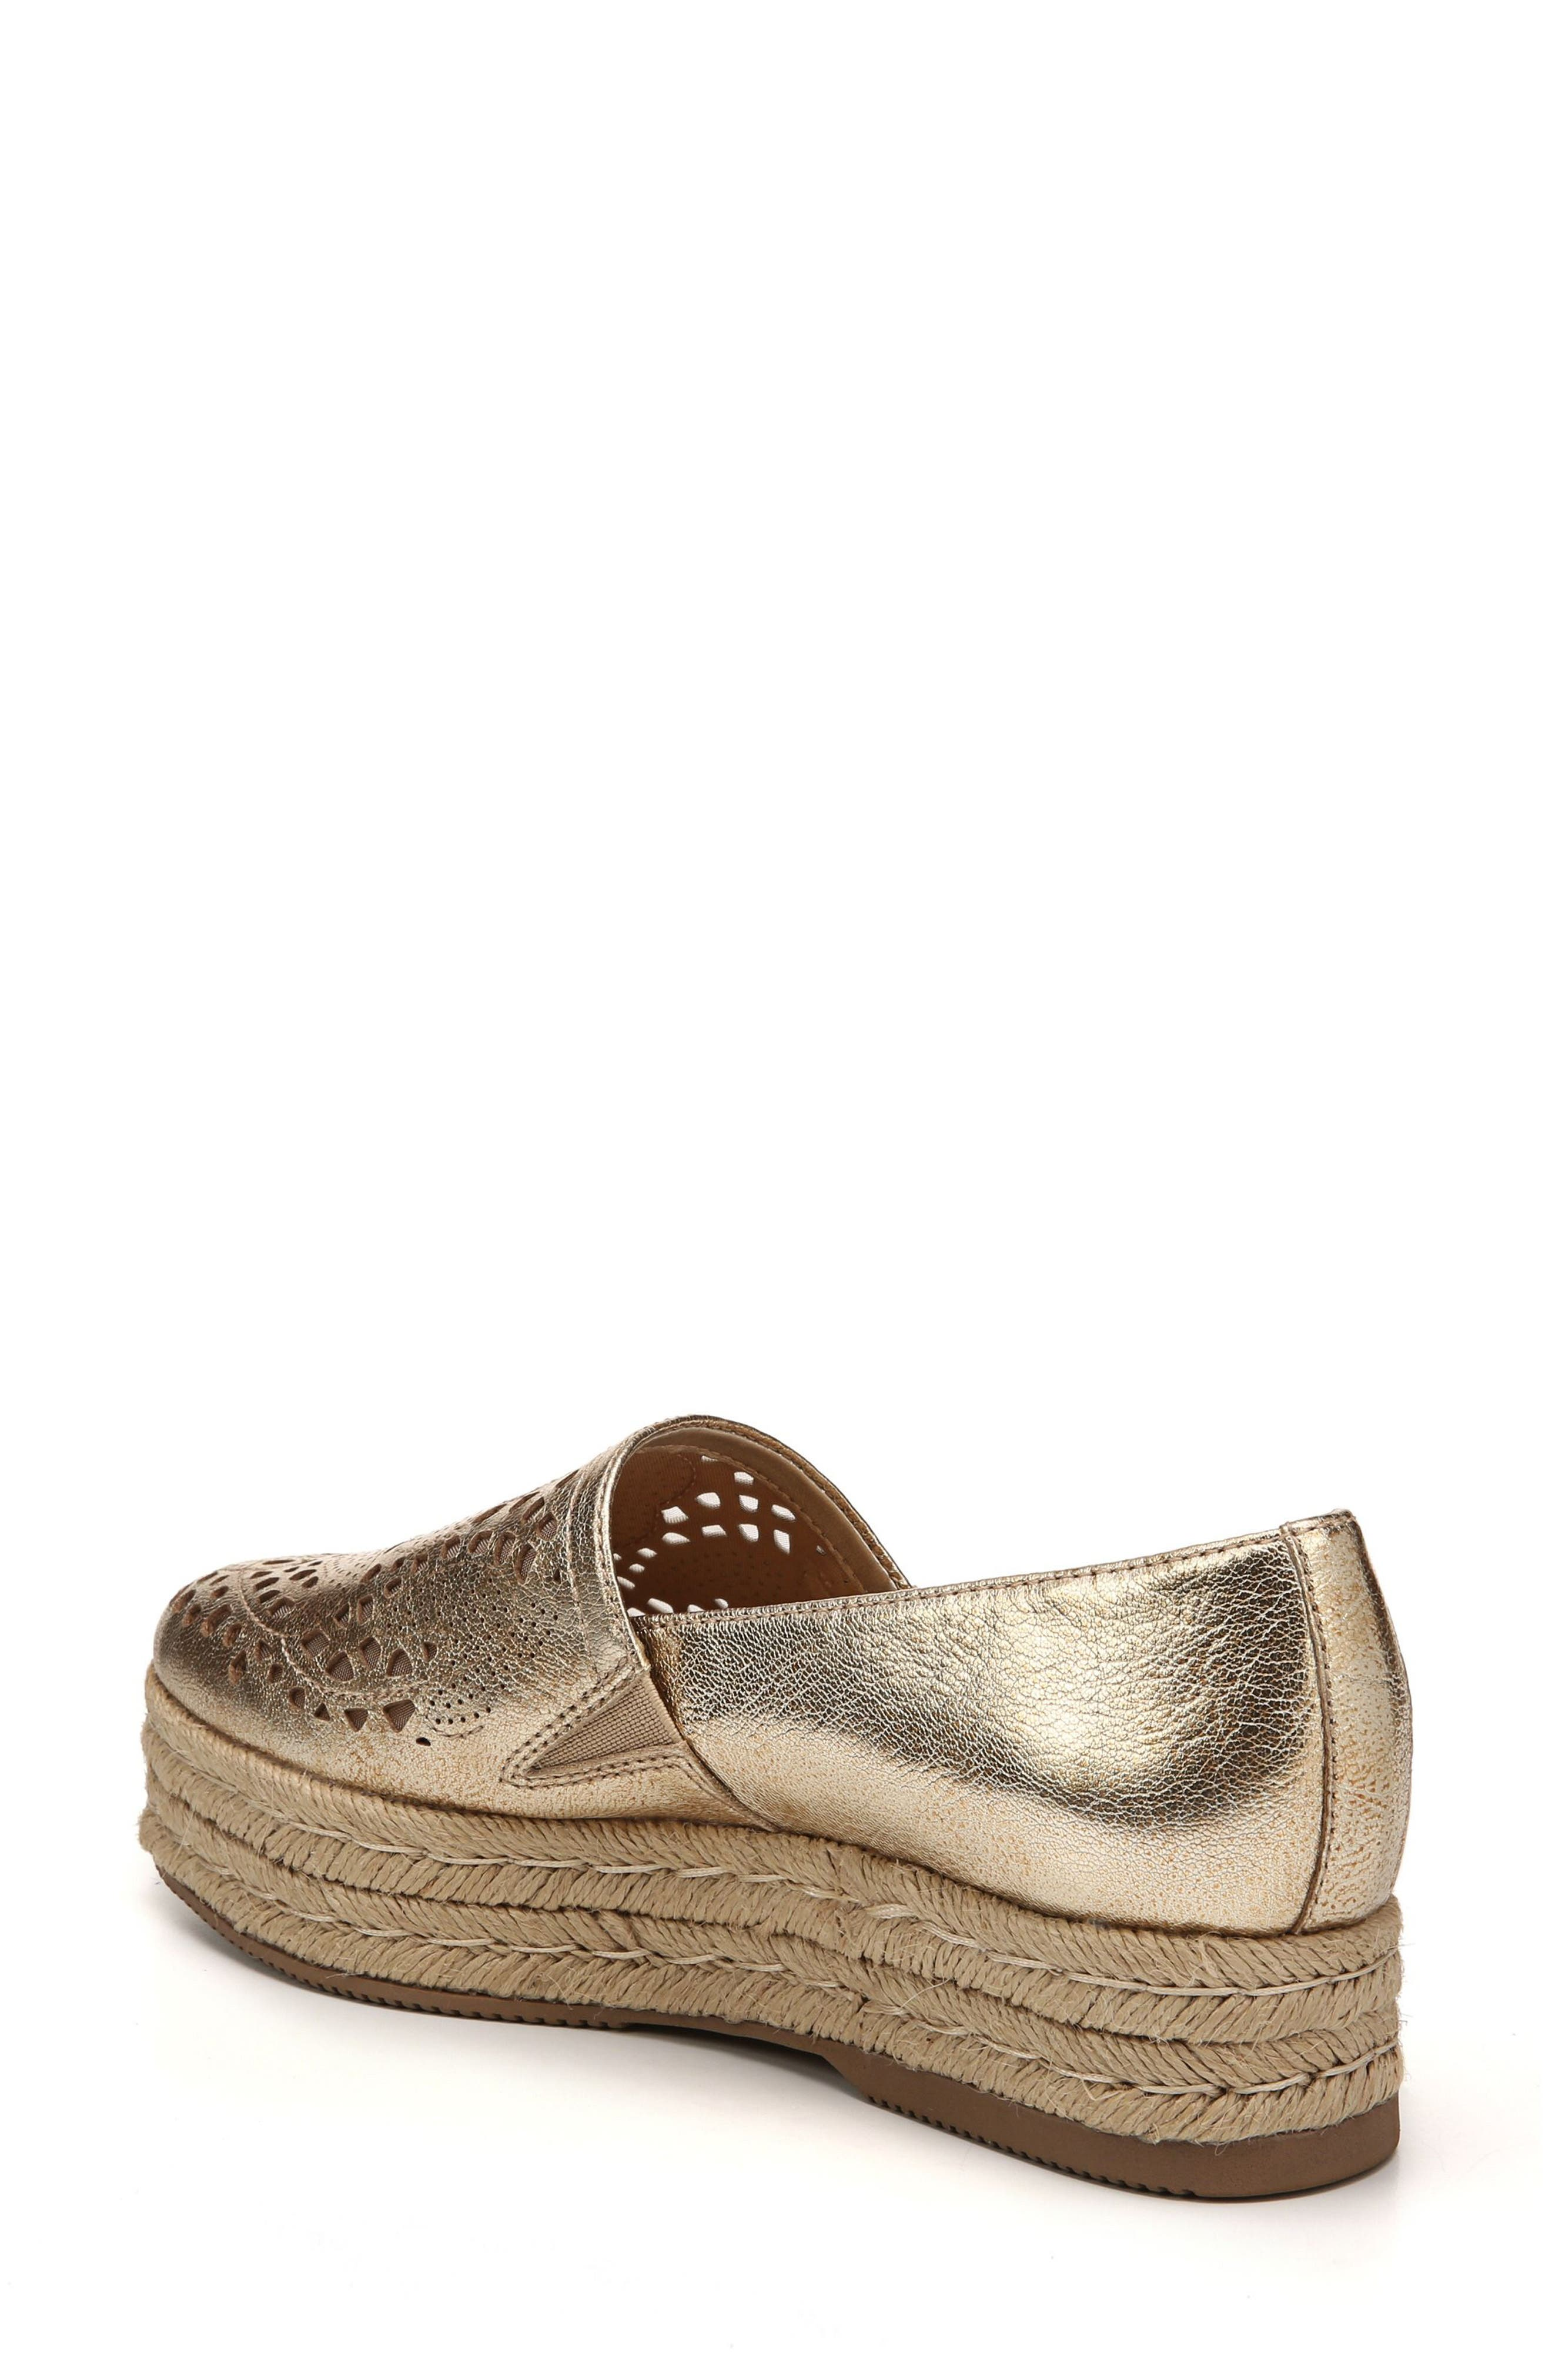 Thea Perforated Platform Espadrille,                             Alternate thumbnail 2, color,                             Platino Leather